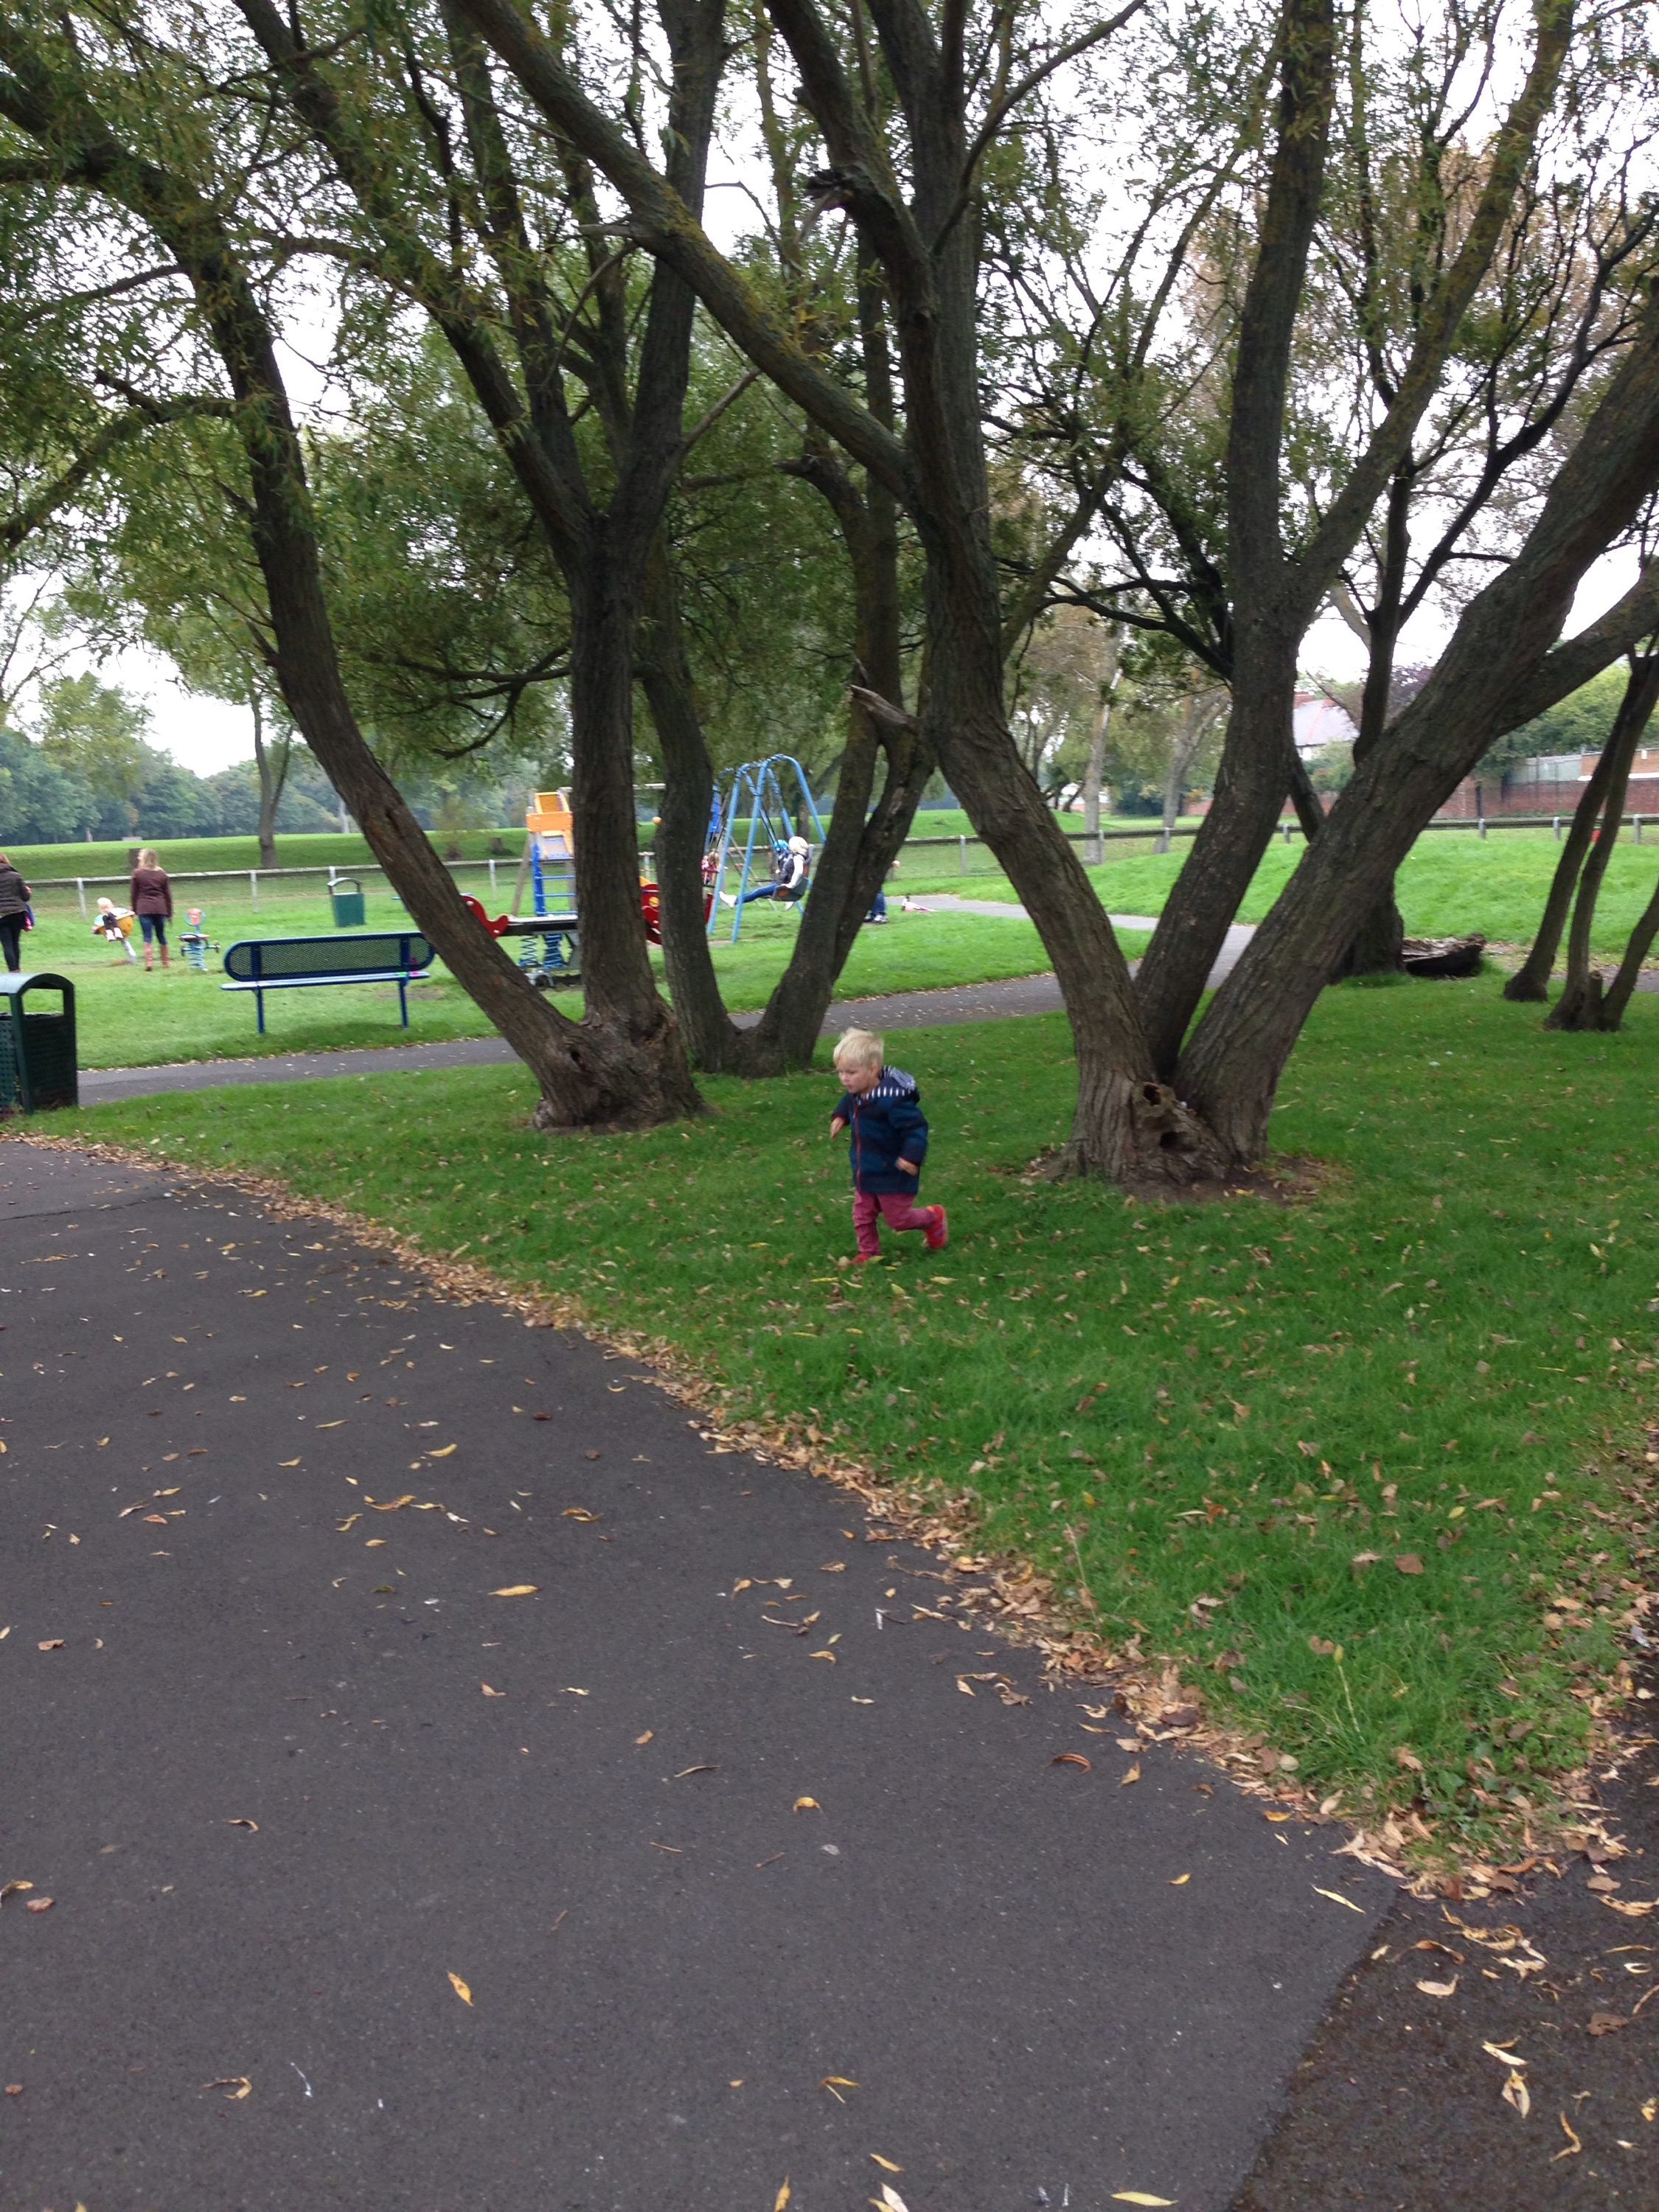 churchil playing fields playground in north tyneside trees